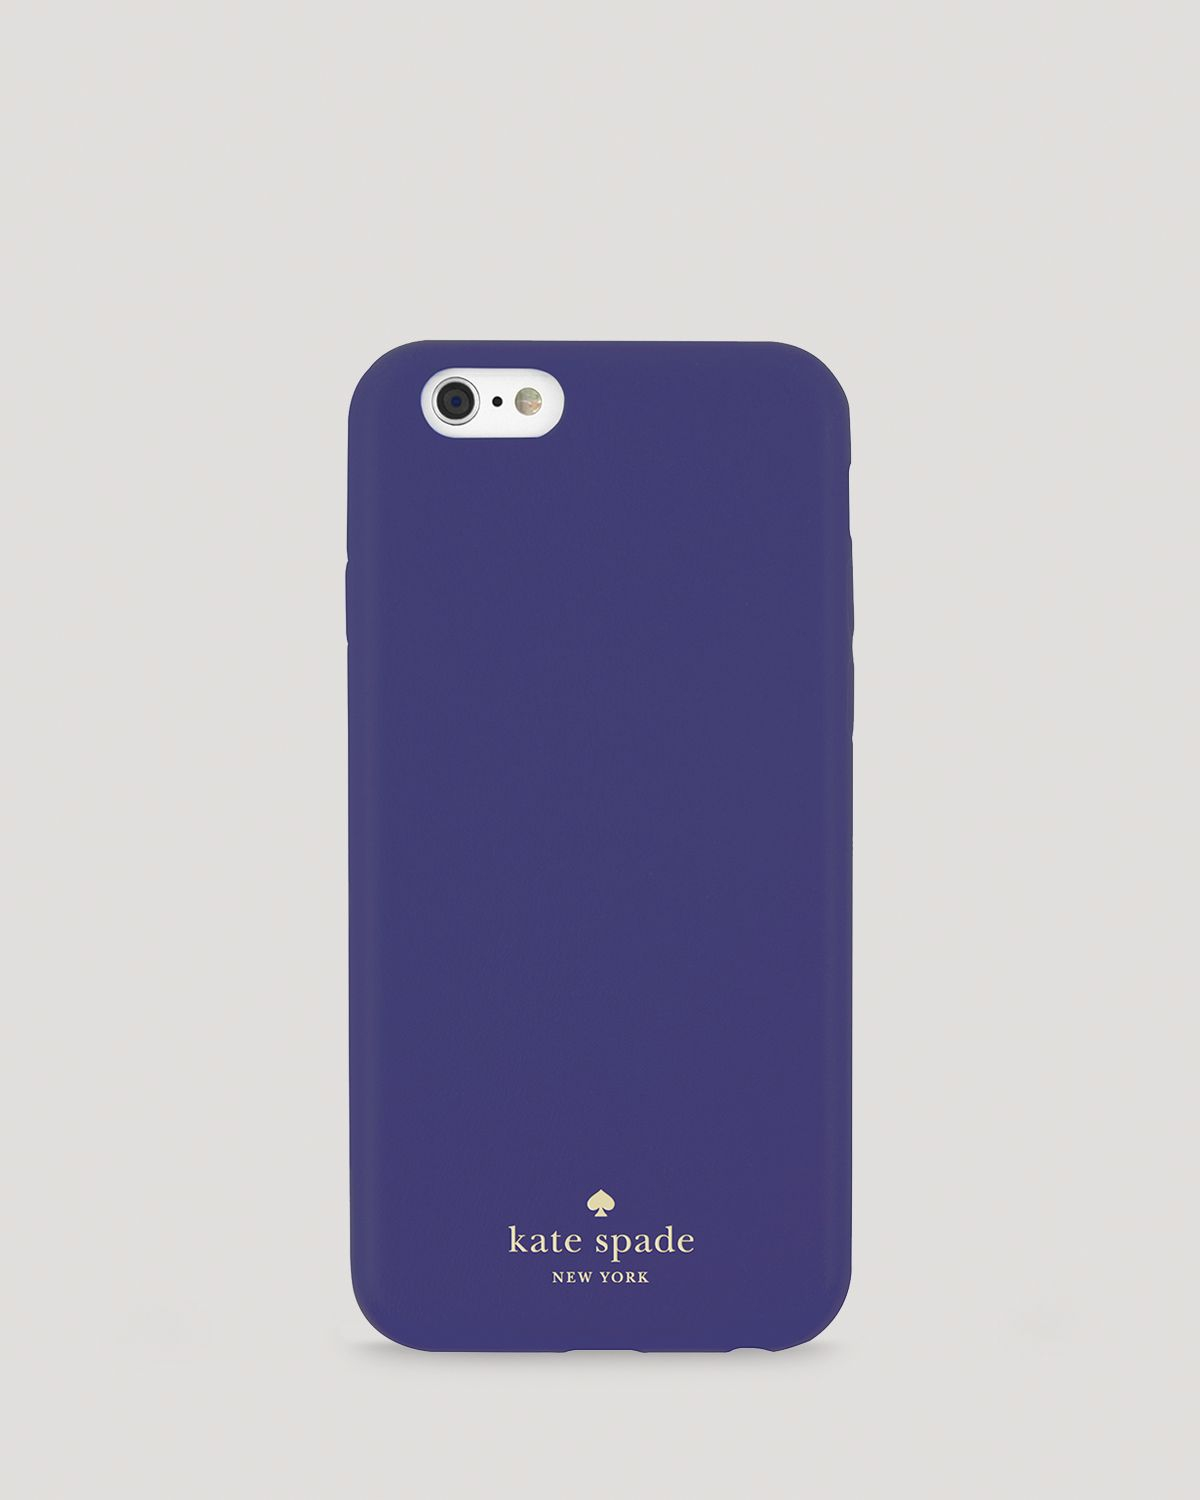 Kate spade Iphone 6 Case - Leather Wrap in Blue : Lyst